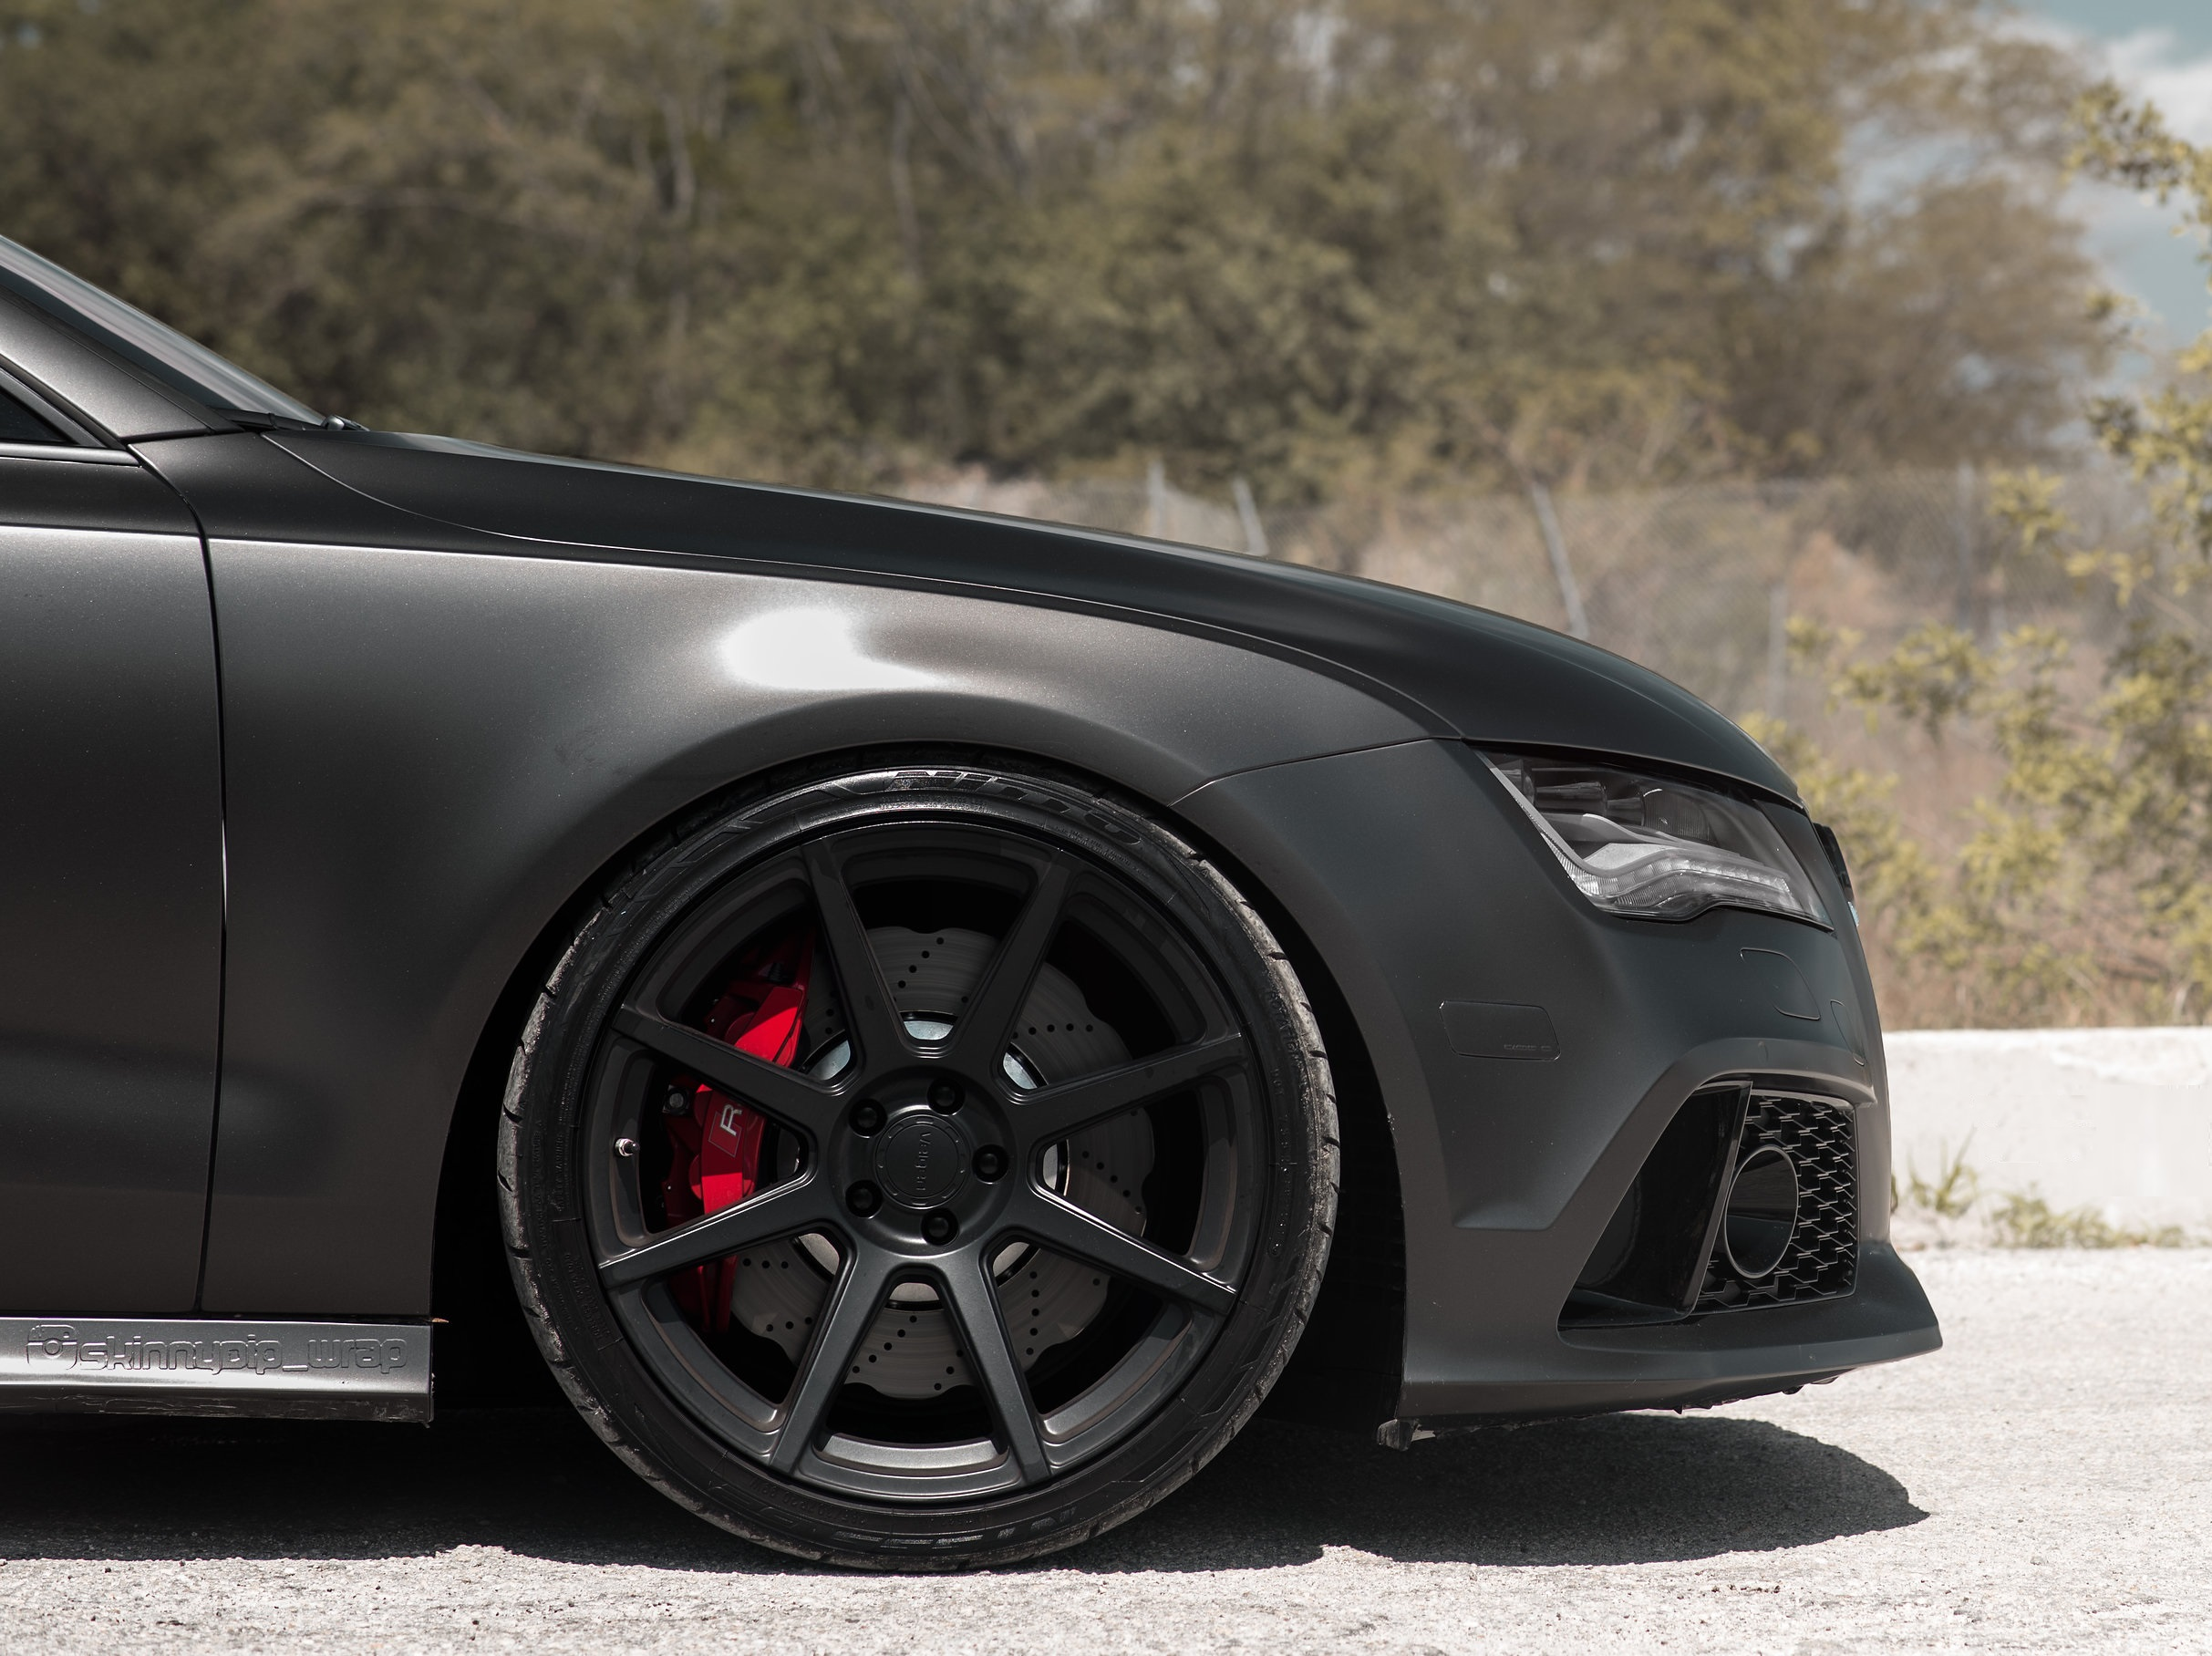 Matt Black Audi Rs7 On Velgen Wheels